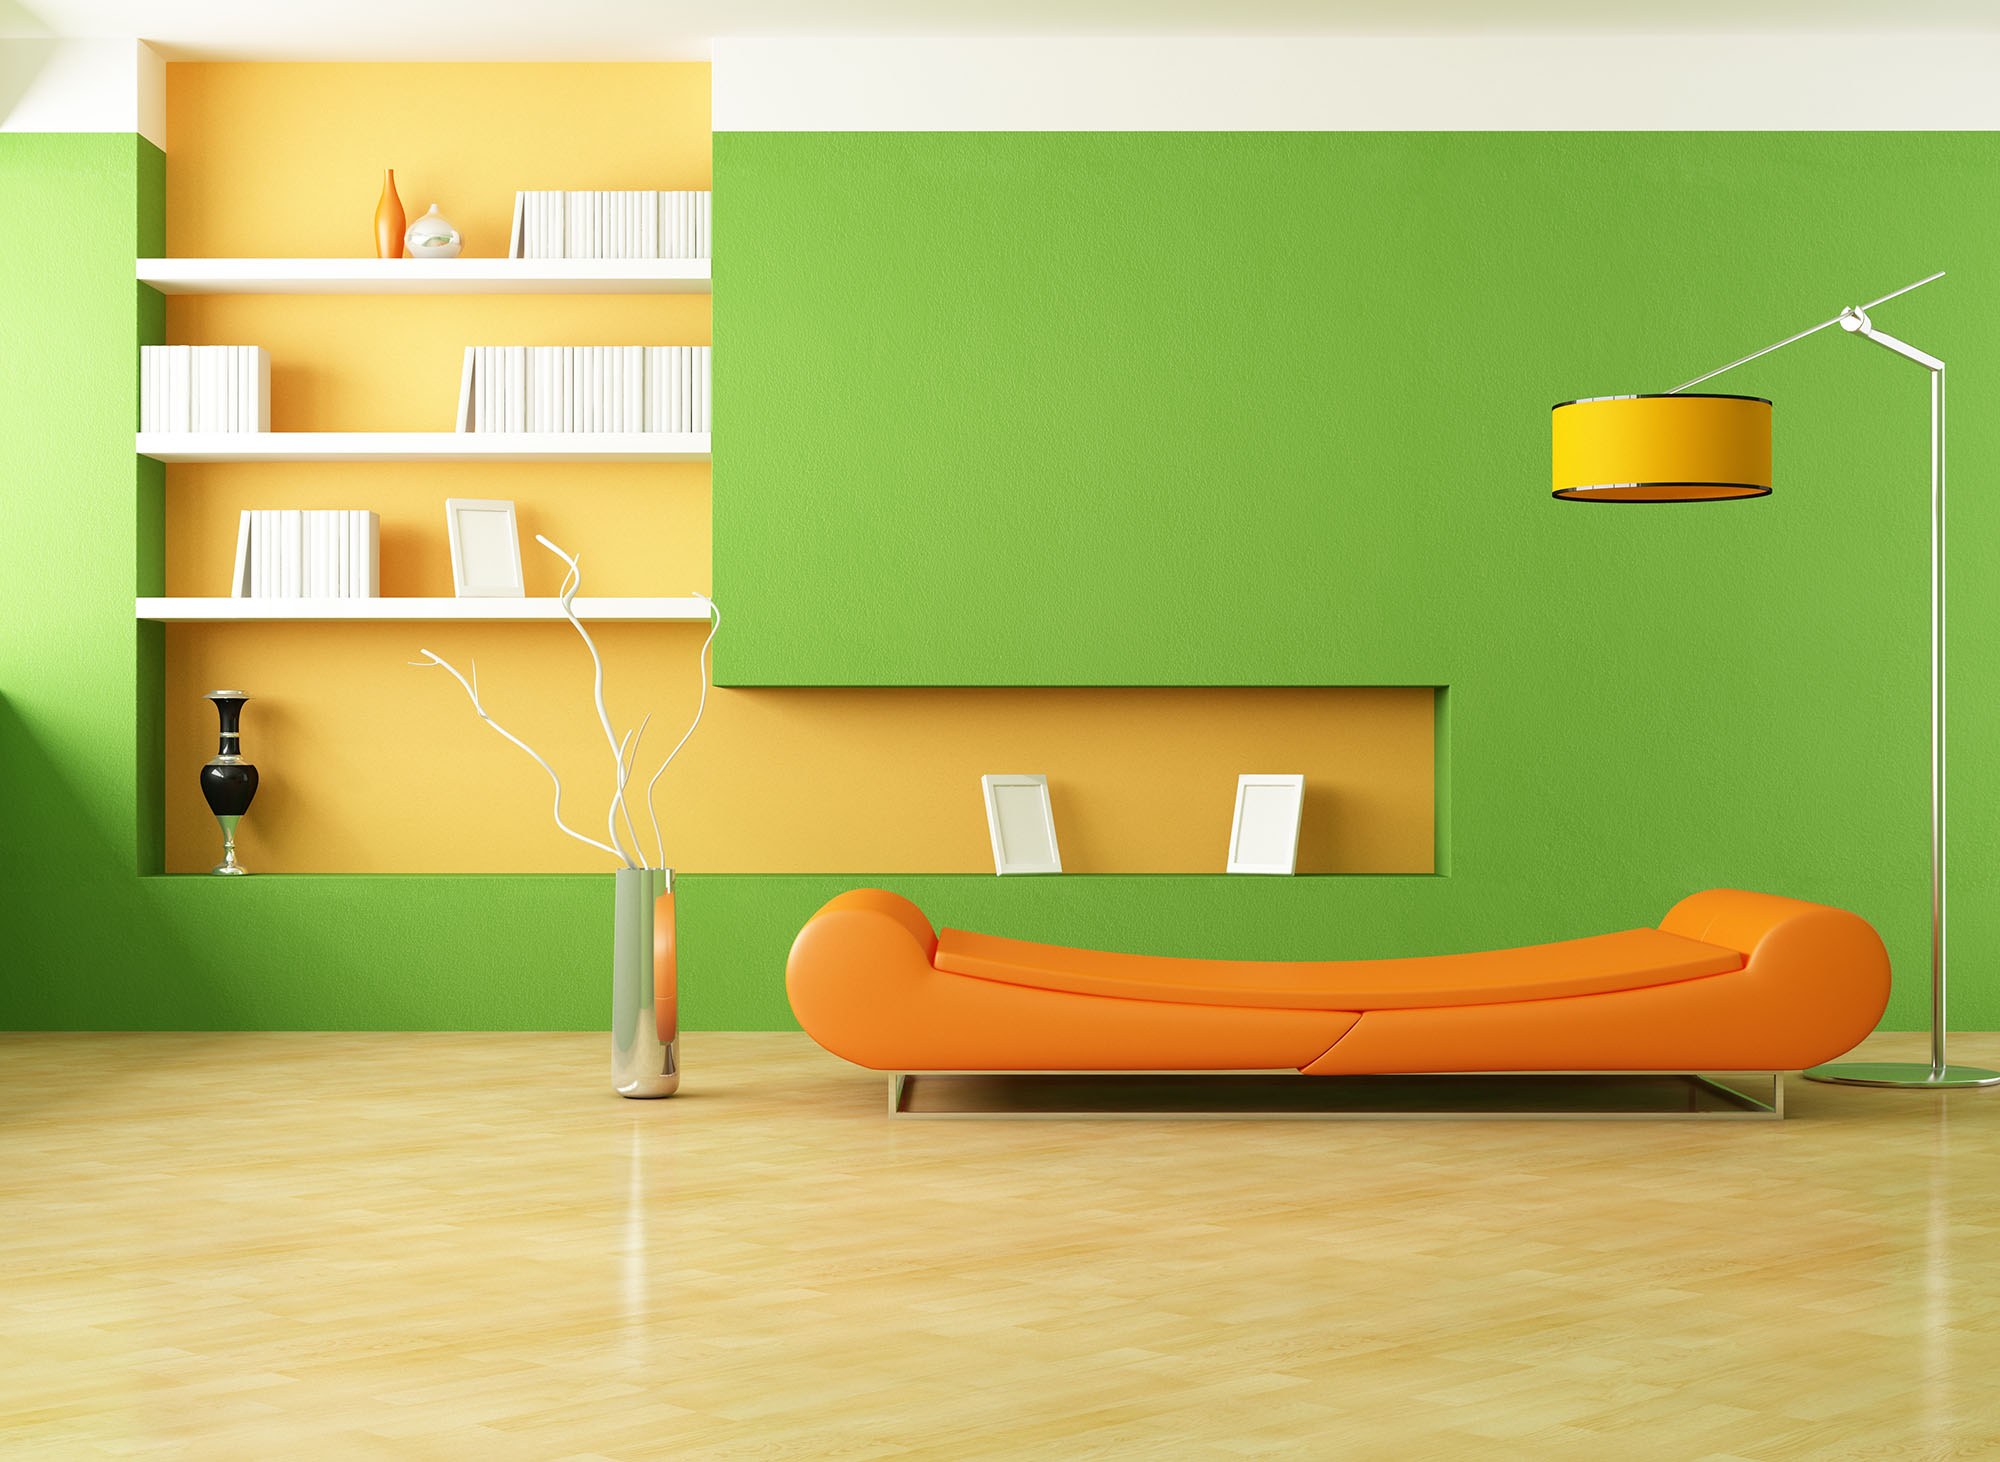 interior-awesome-minimalist-living-room-design-with-beautiful-green-and-cream-wall-paint-themed-together-with-cool-white-bookshelf-attached-to-the-wall-and-unique-orange-sectional-fabric-sofa-near-amu